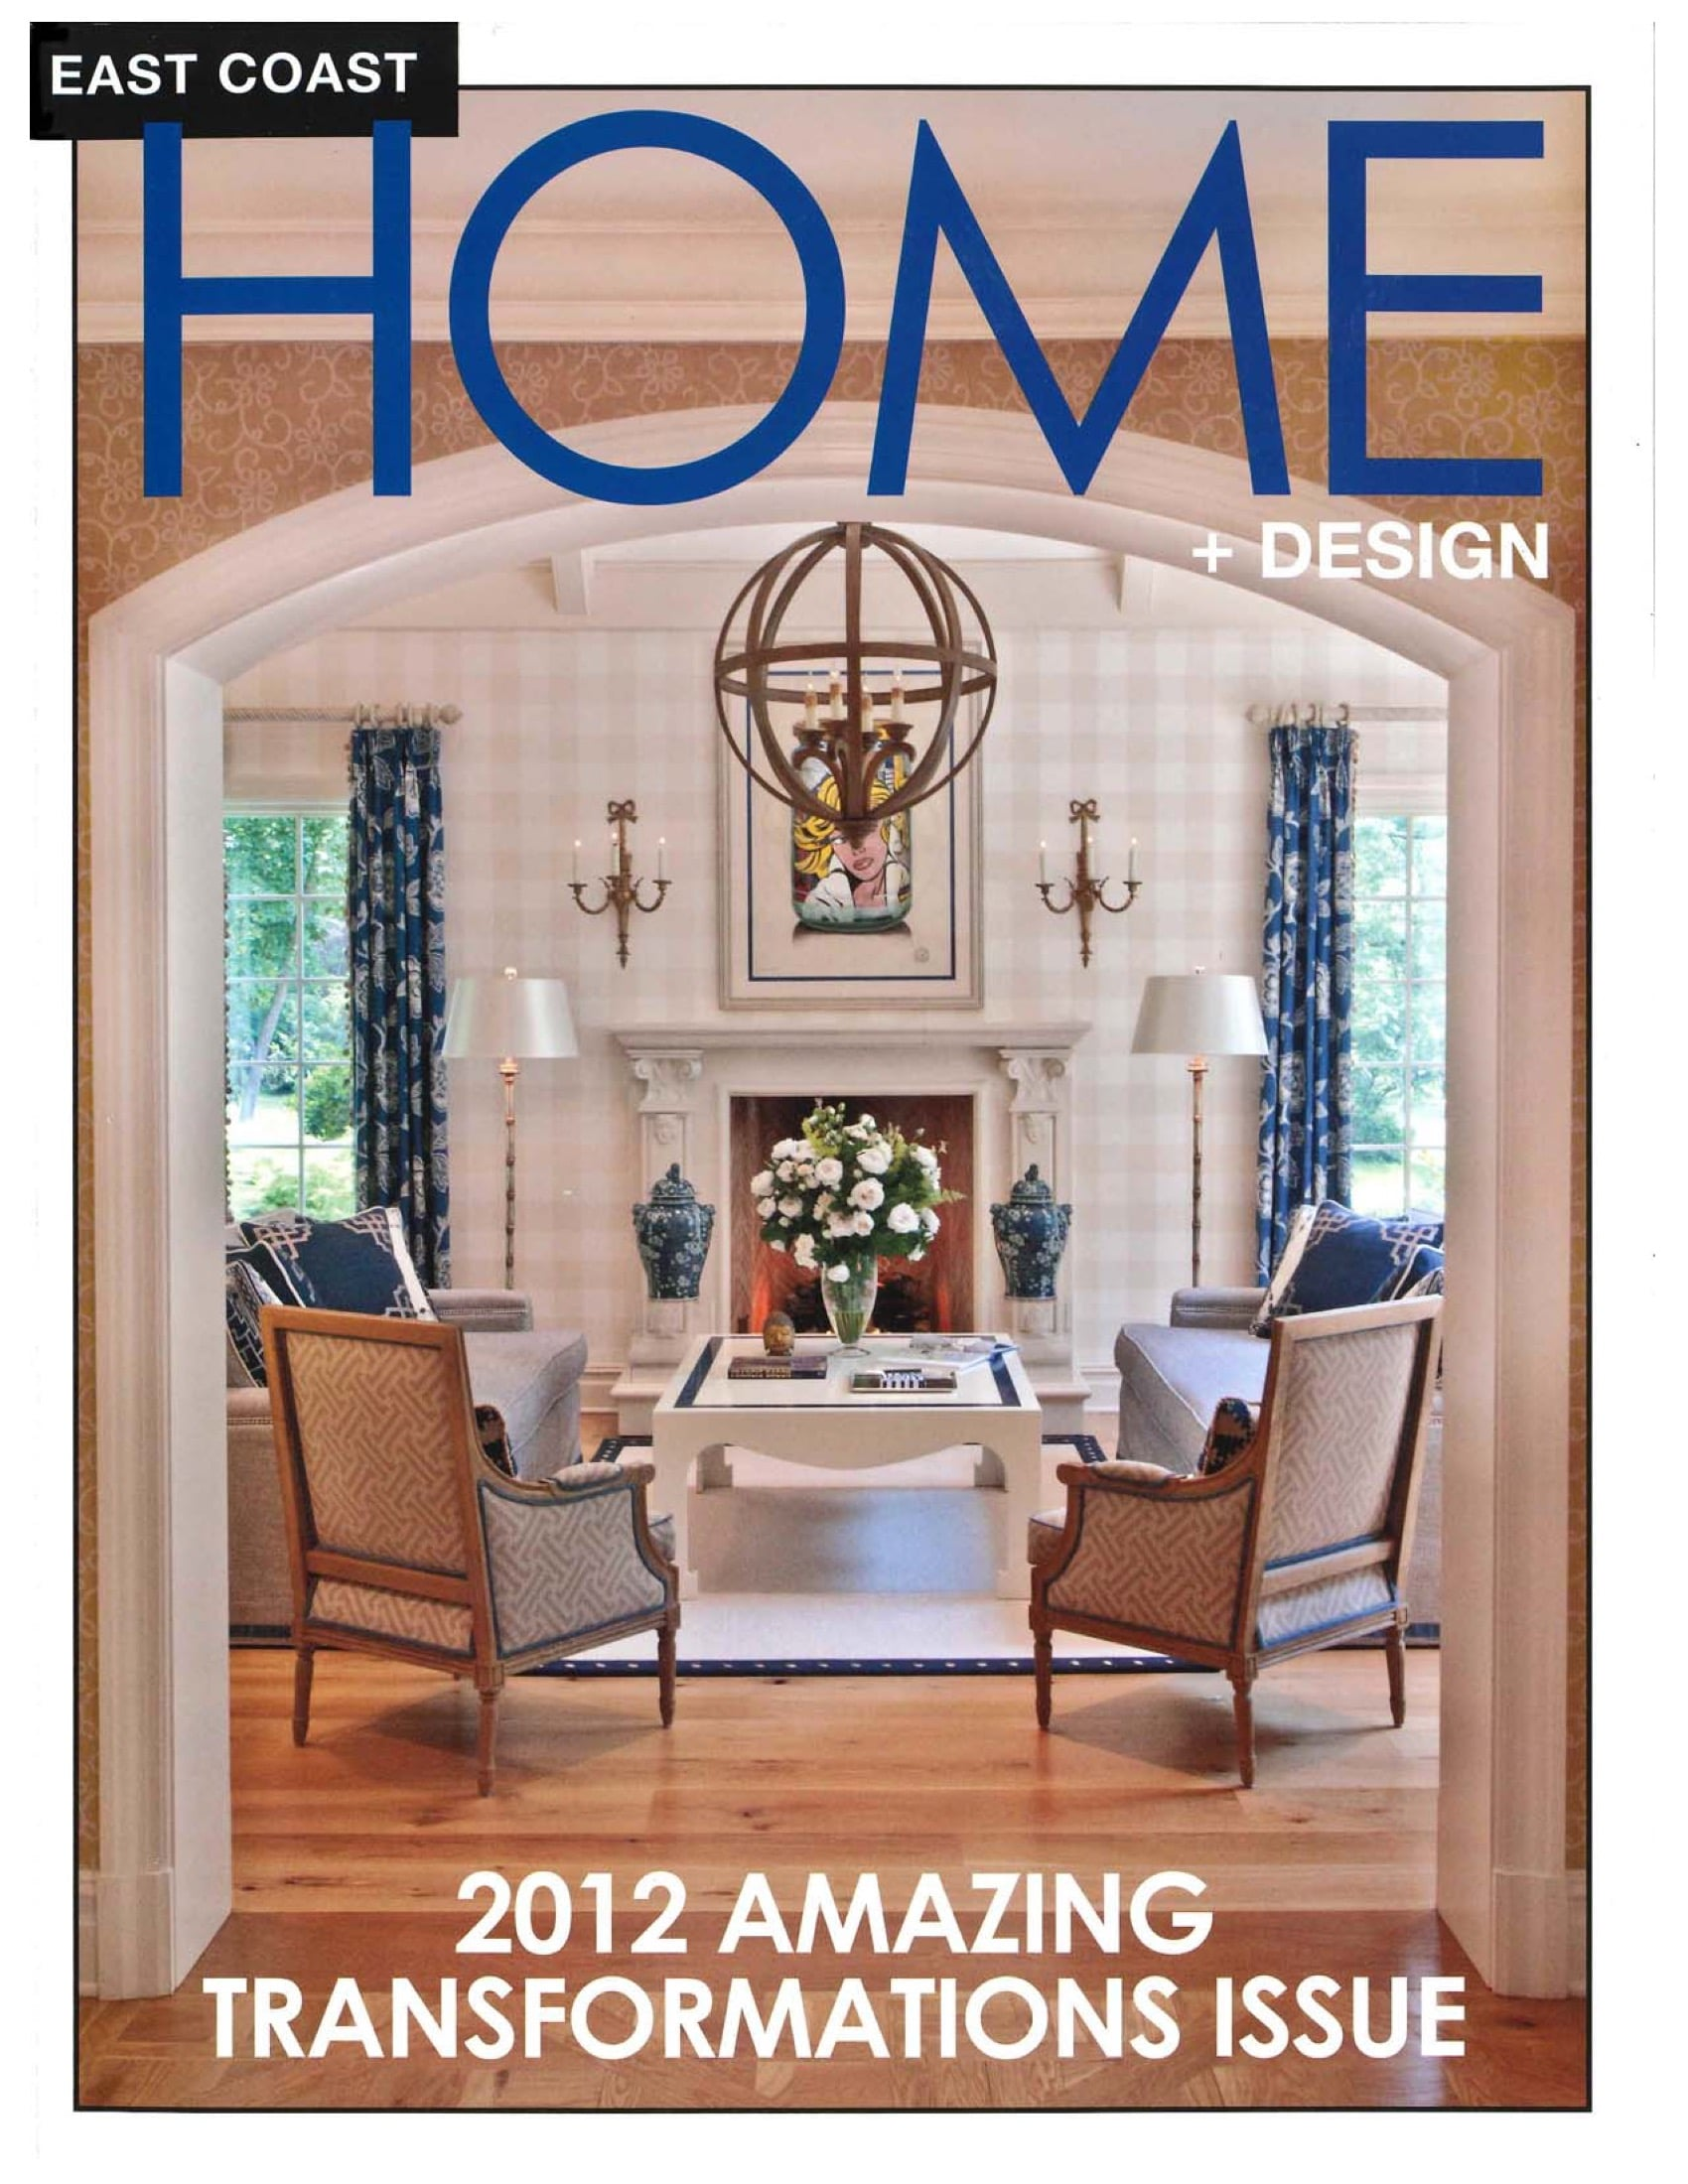 East Coast Home + Design - July 2012